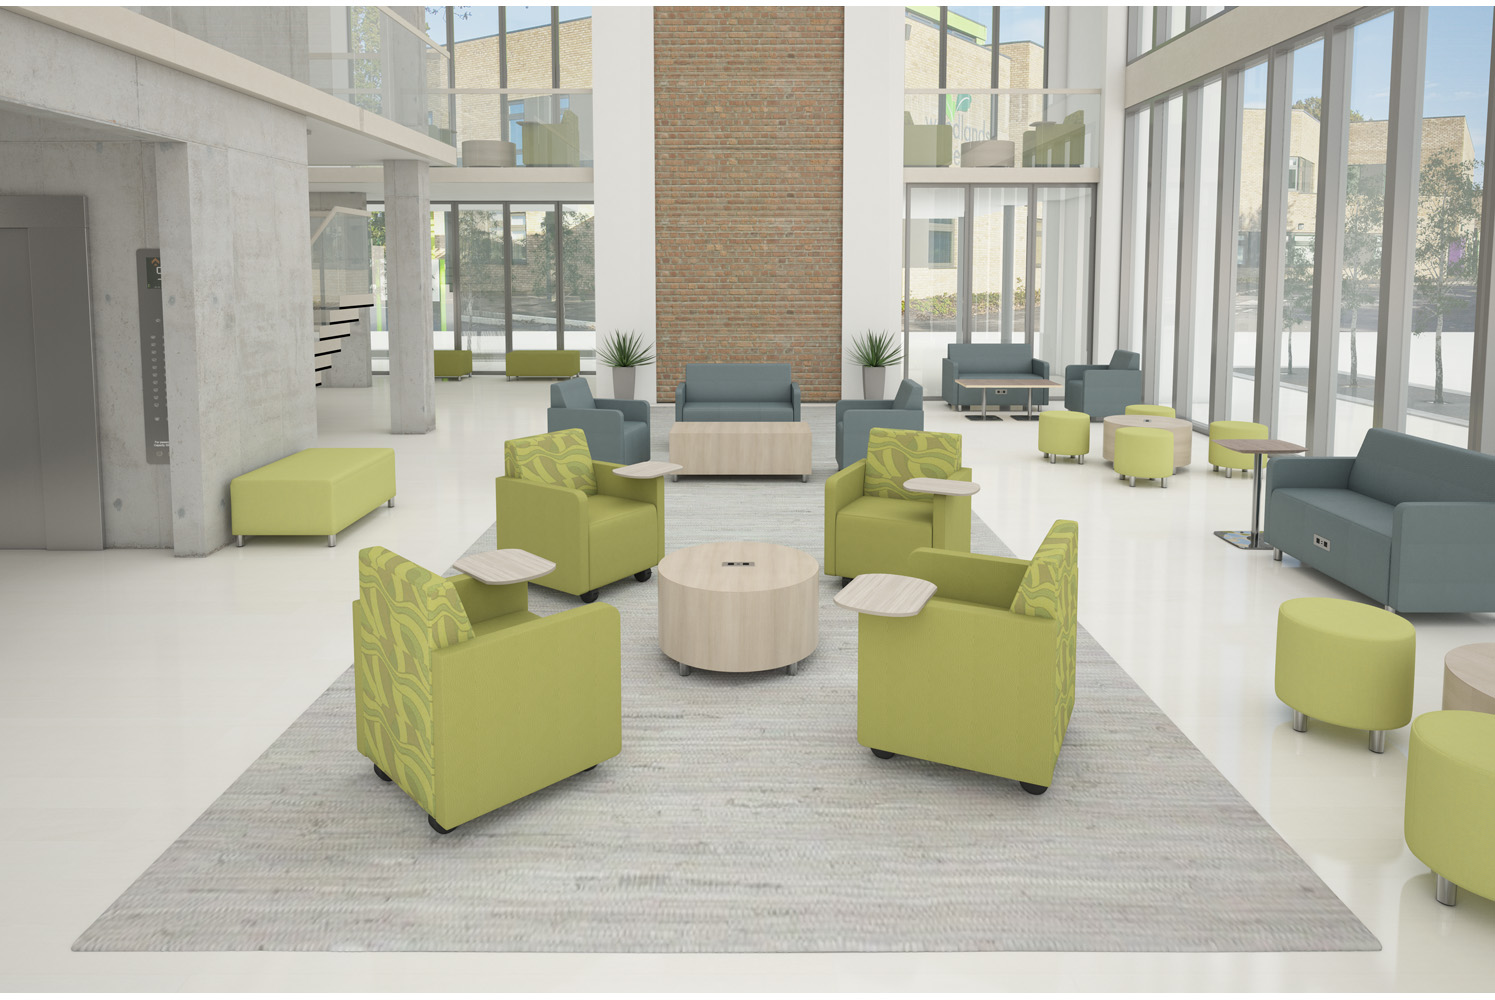 The versatile Raven collection includes modular, lounge, bench and banquette soft seating